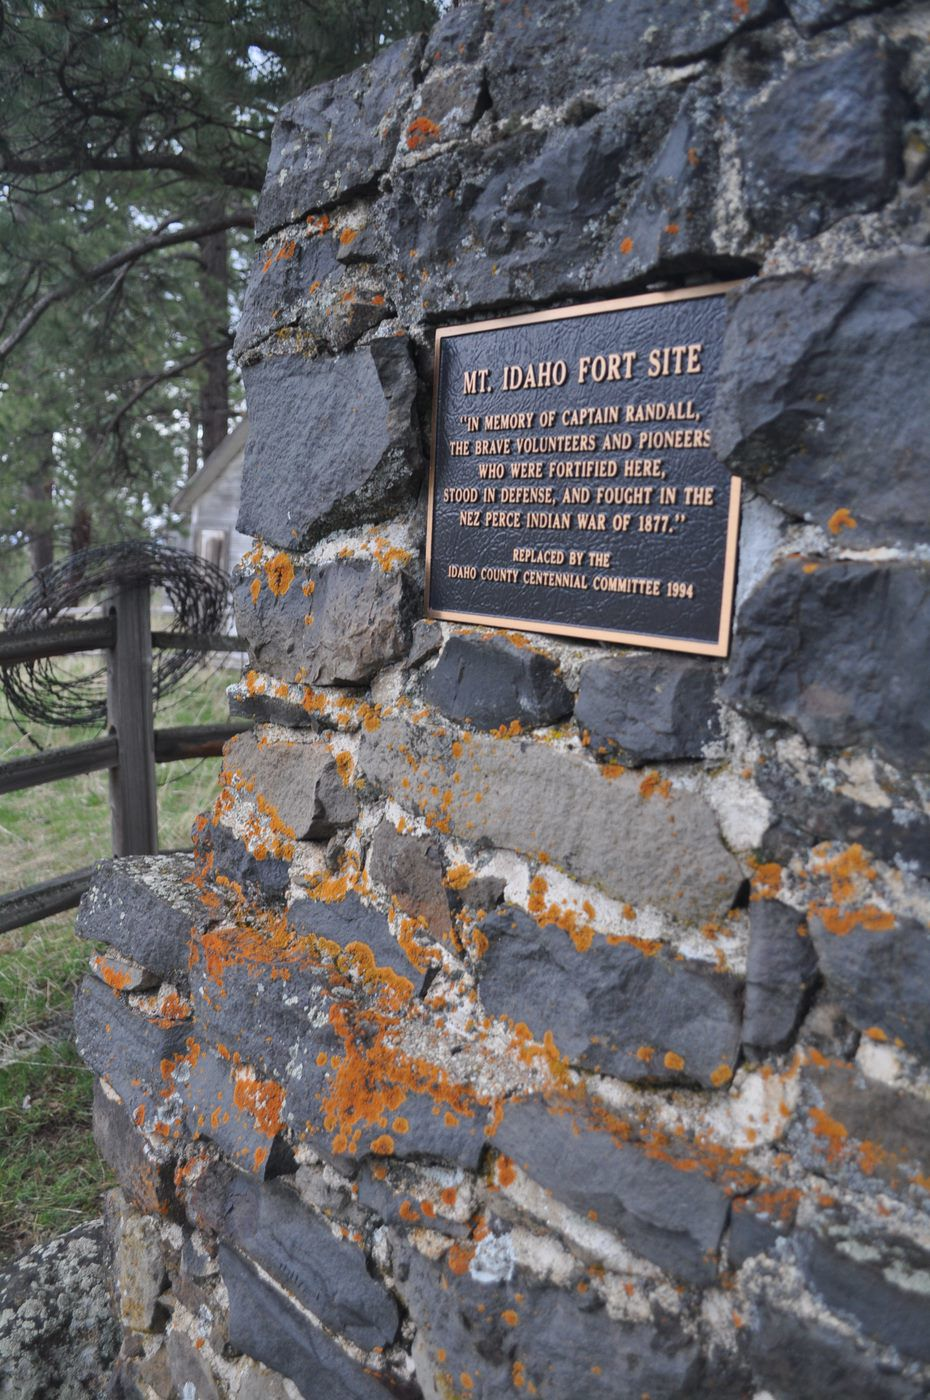 Cairn recognizes people involved in fort efforts